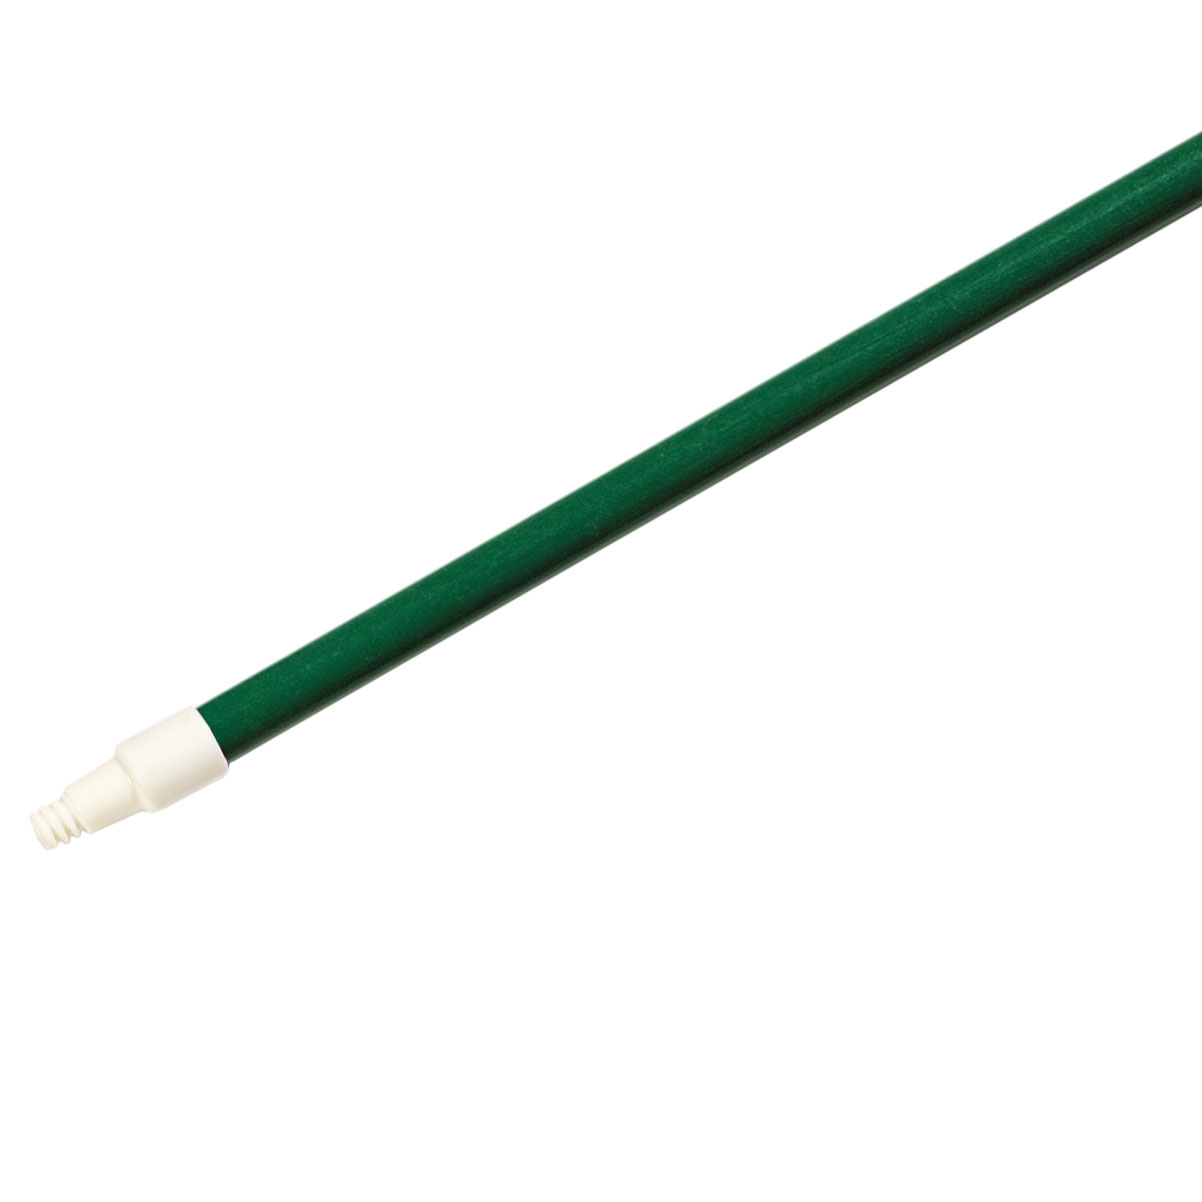 "Carlisle 4022709 60"" Handle - 1"" Dia, Fiberglass, Green"